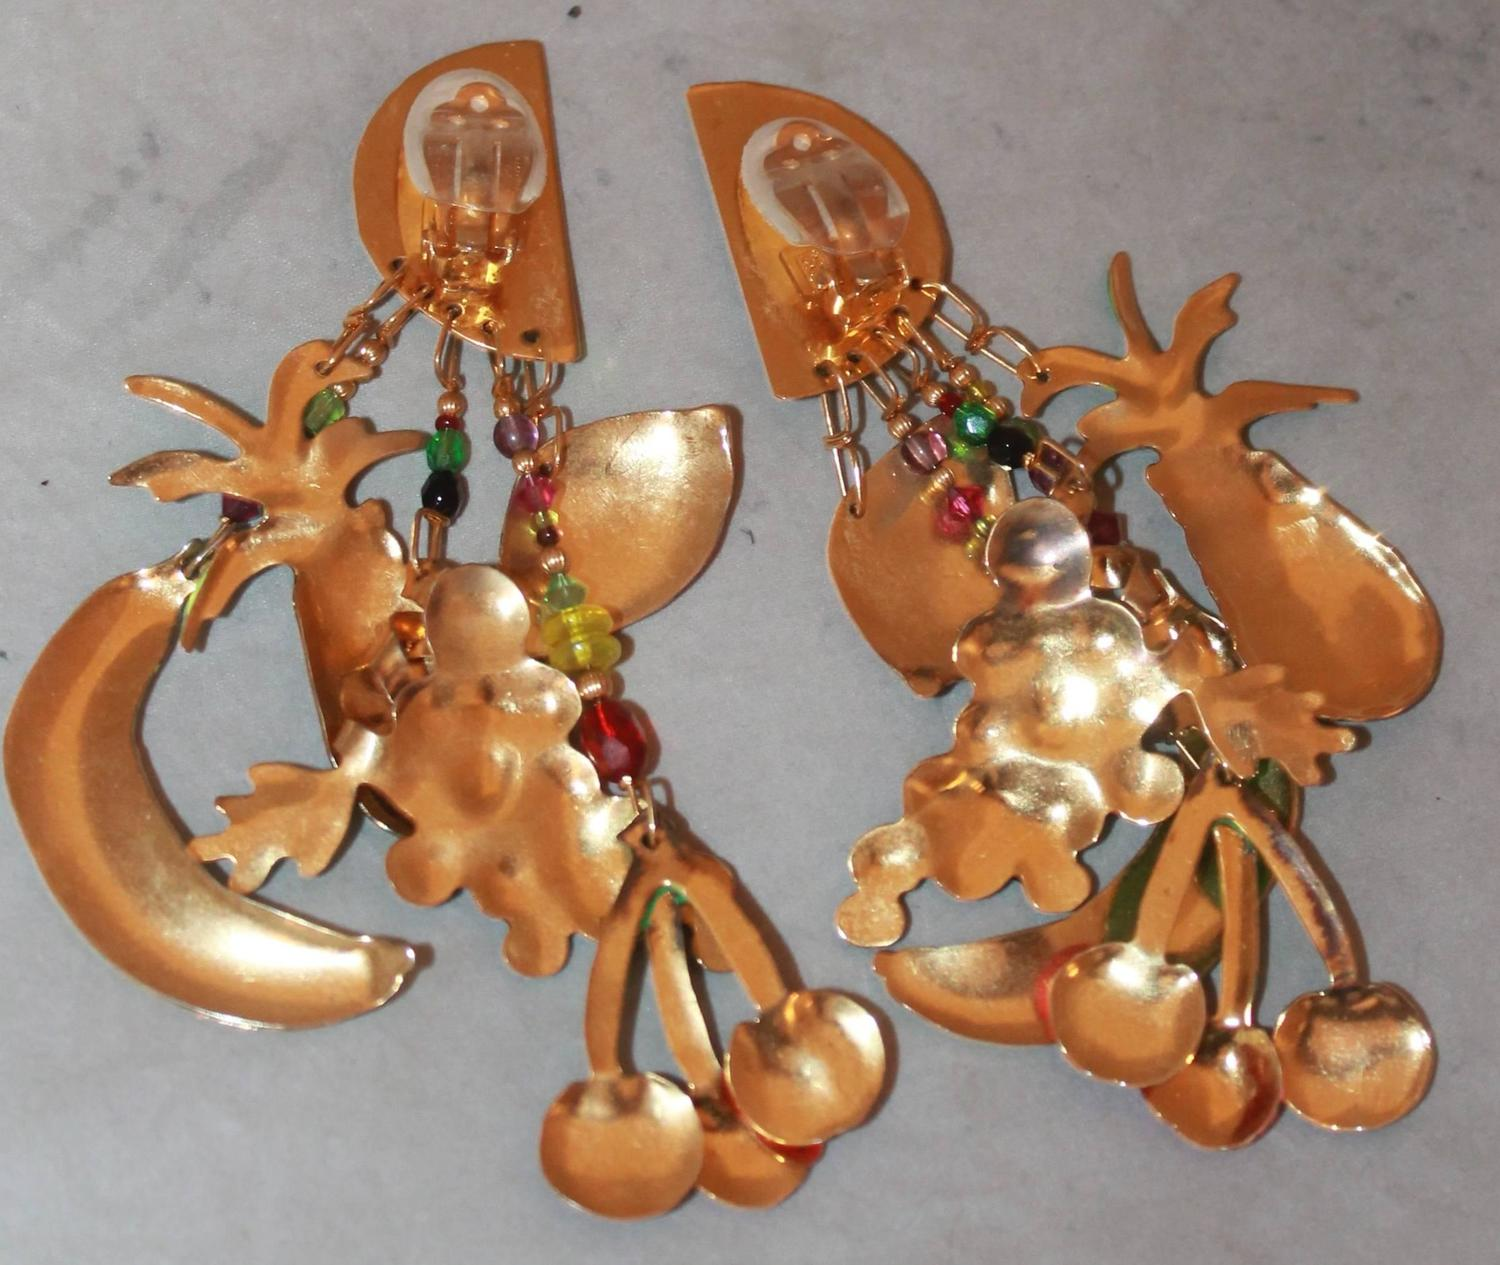 Palm Beach Chic Circa 1990s: Lunch At The Ritz Multi-Colored Fruit Themed Dangle Clip